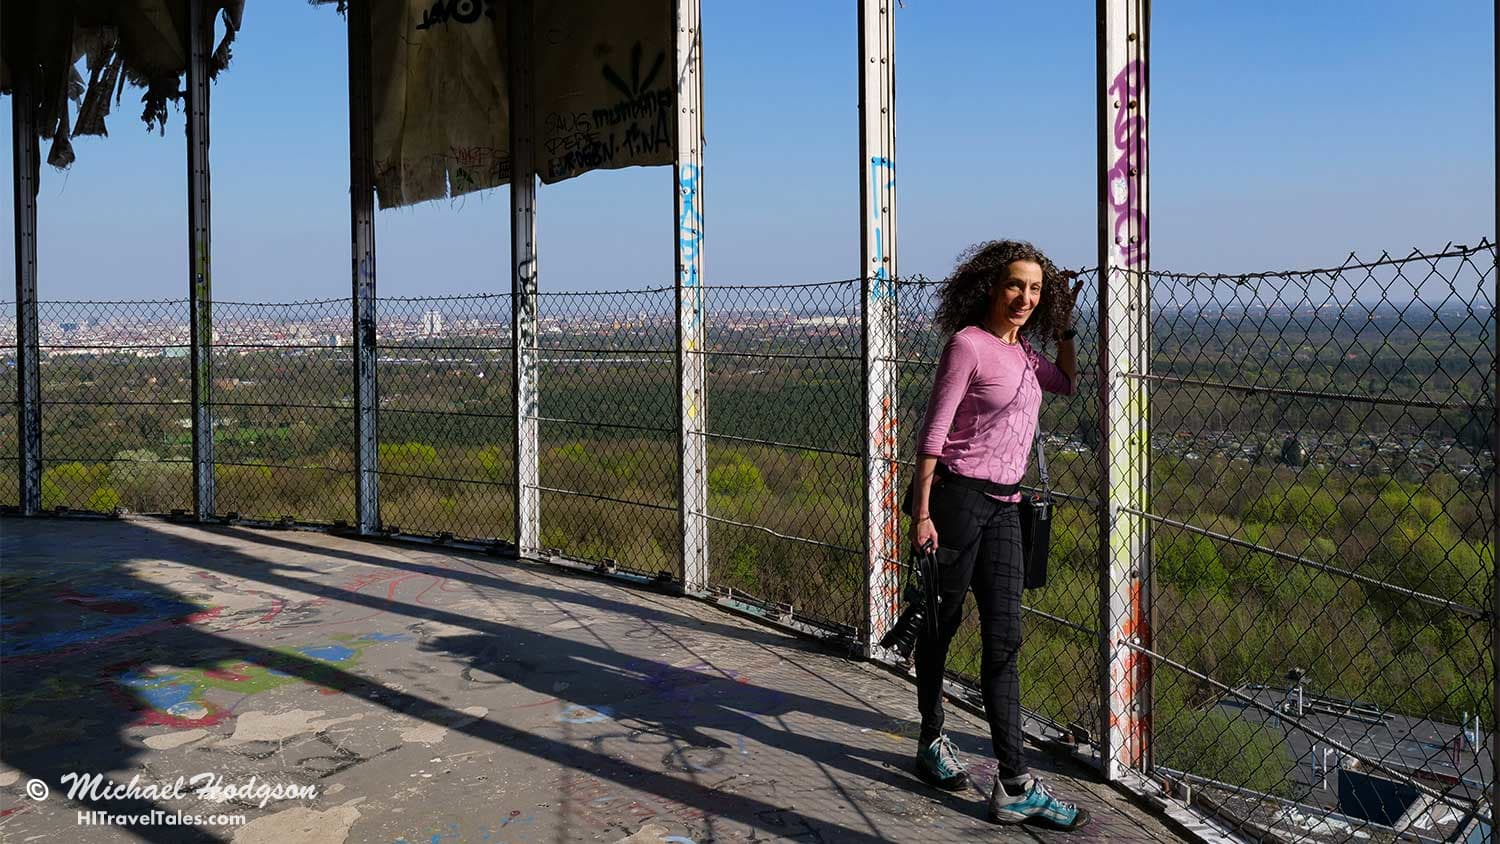 It's not all about the street art. Therese taking in the view at Teufelsberg.